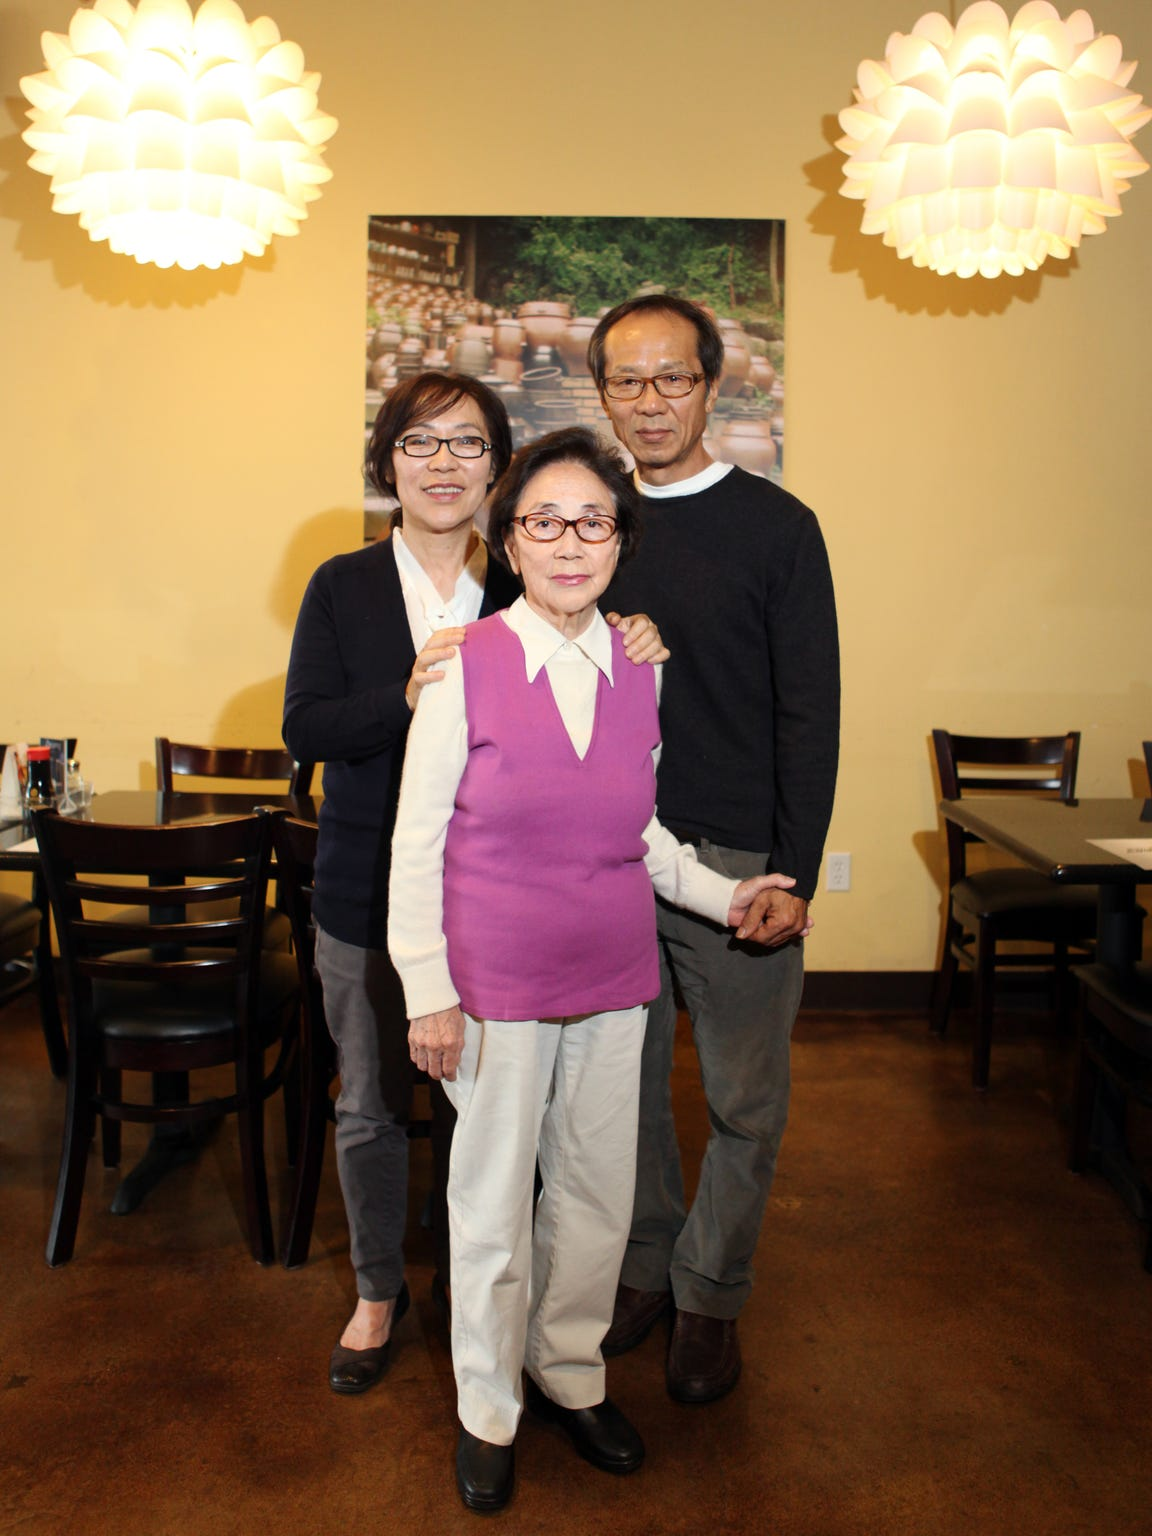 The Kim Family: (From left) Seung Hee Kim, 55, Ok Ja Choi, 80, and Sung Hoon Kim, 58, at their Korean restaurant Maru on Friday, November 22, 2013 in La Quinta, Calif.